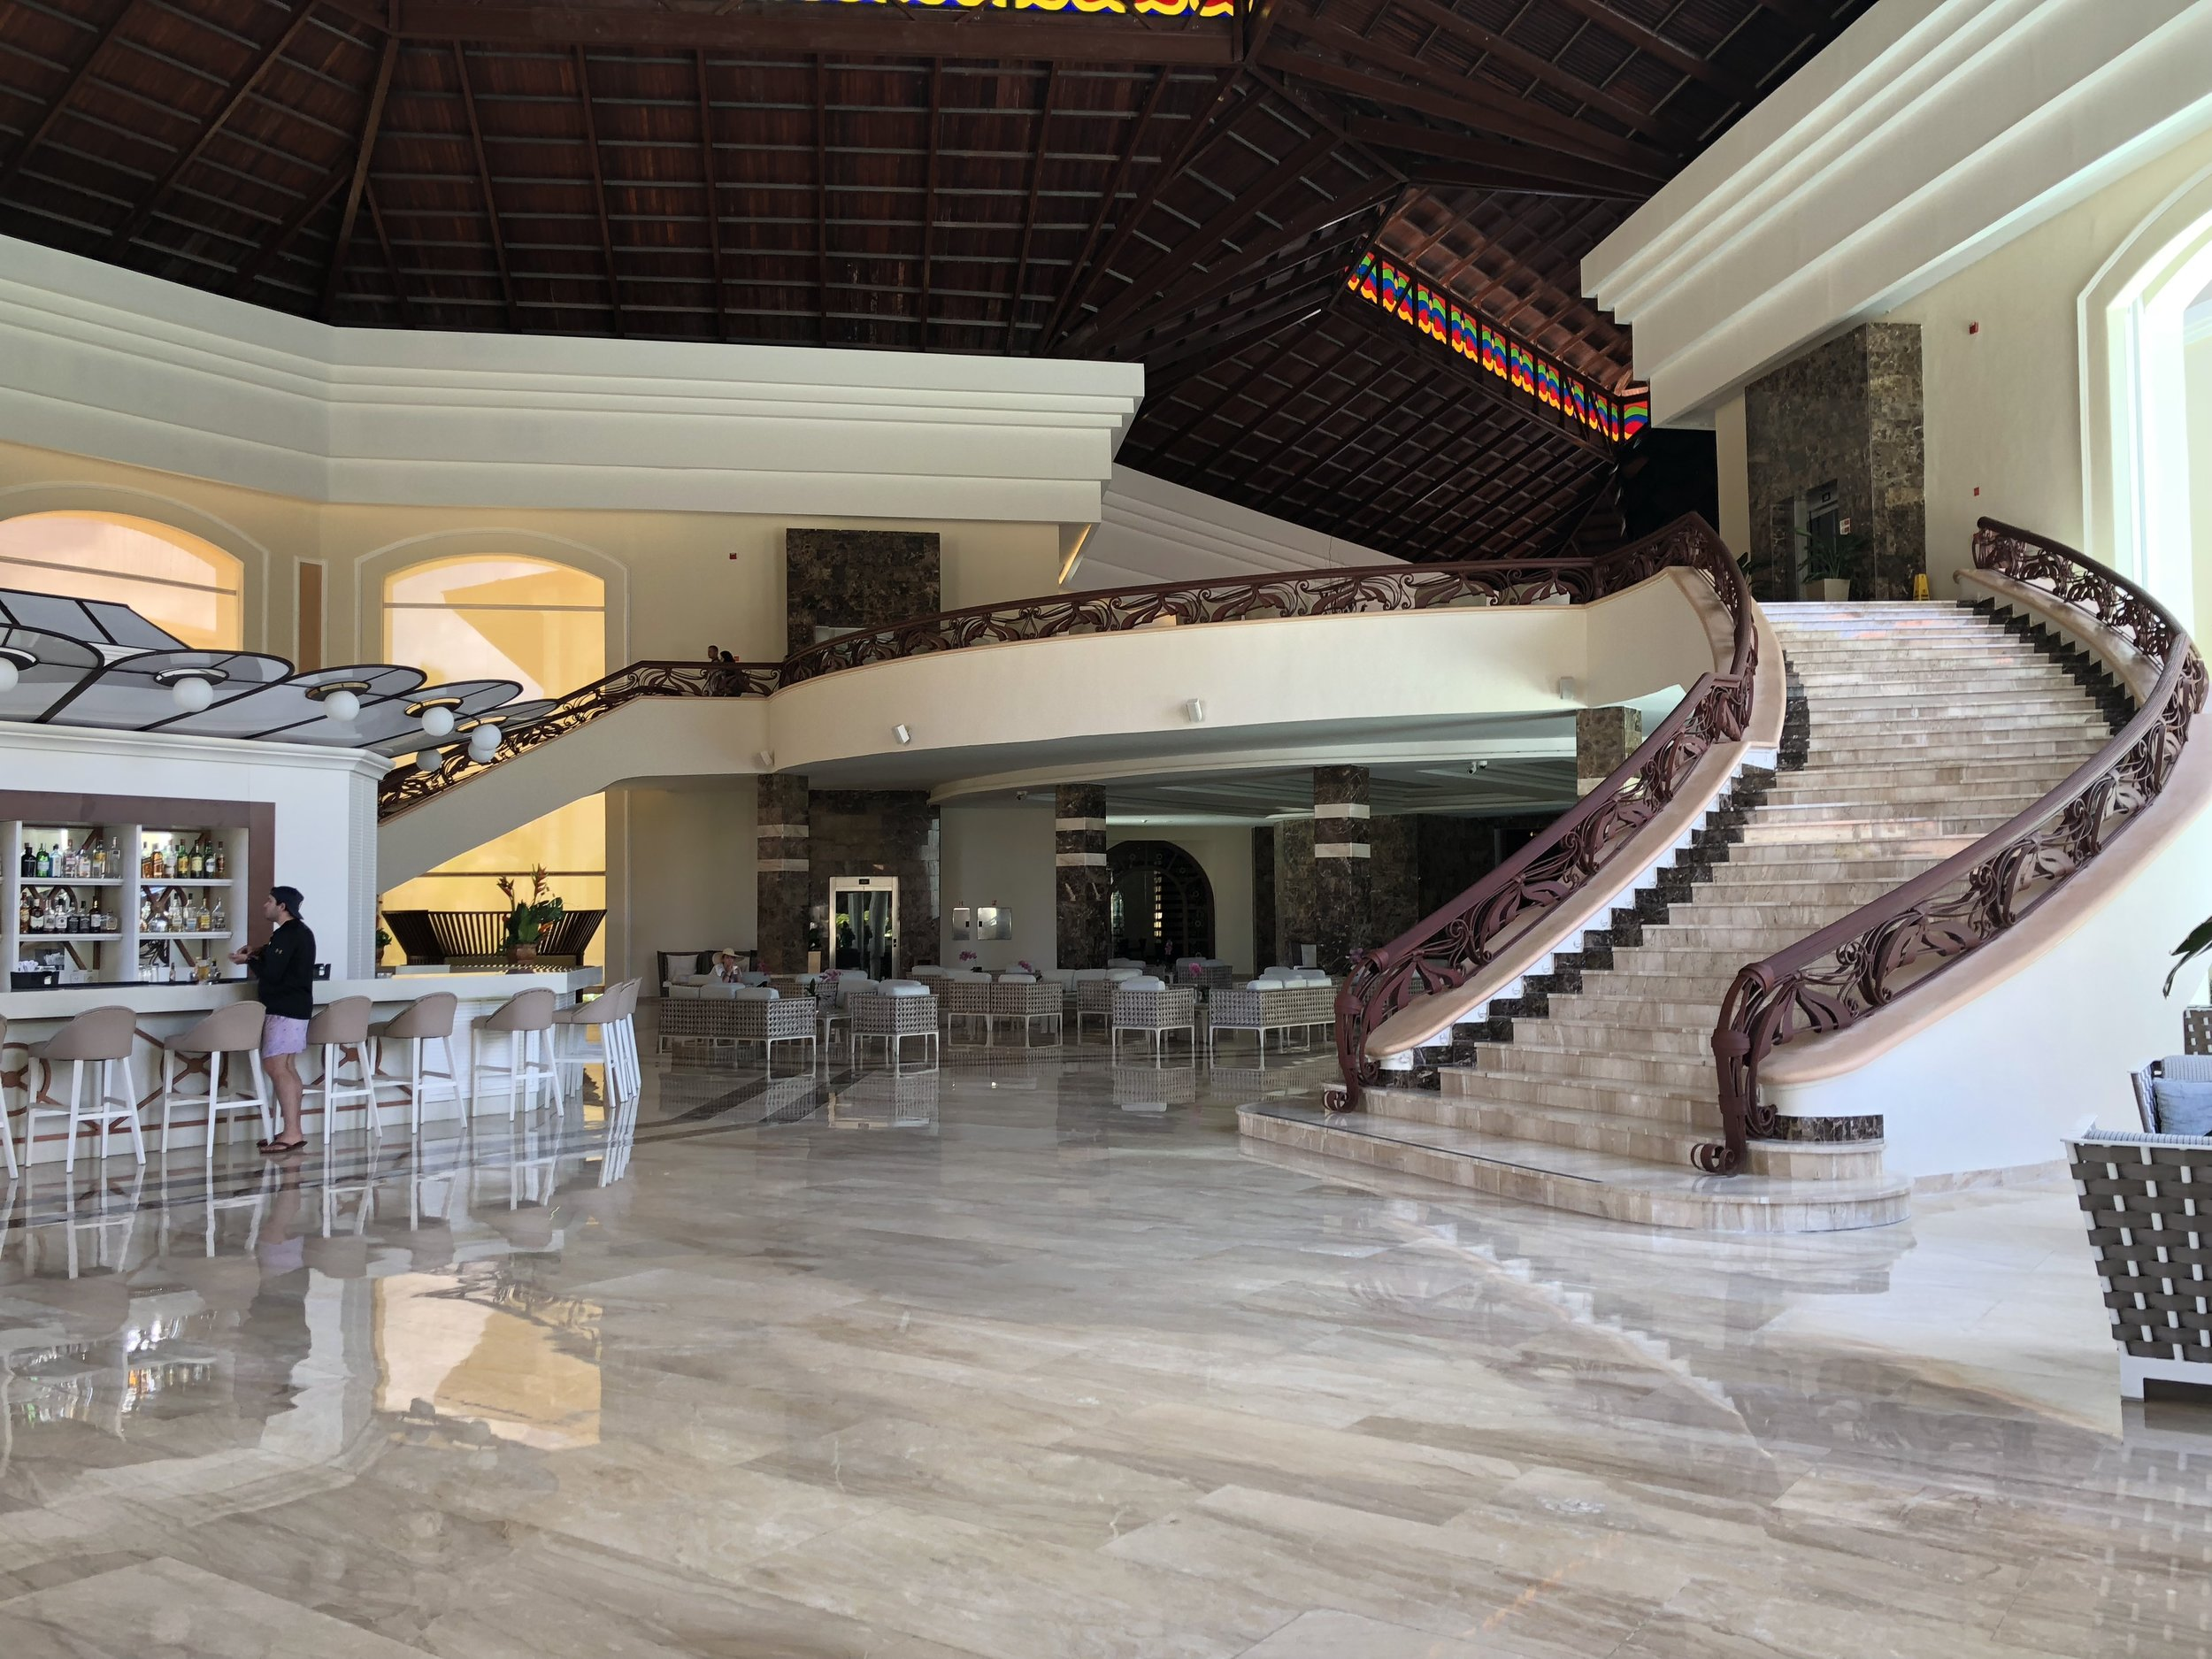 The stairs in the main lobby.